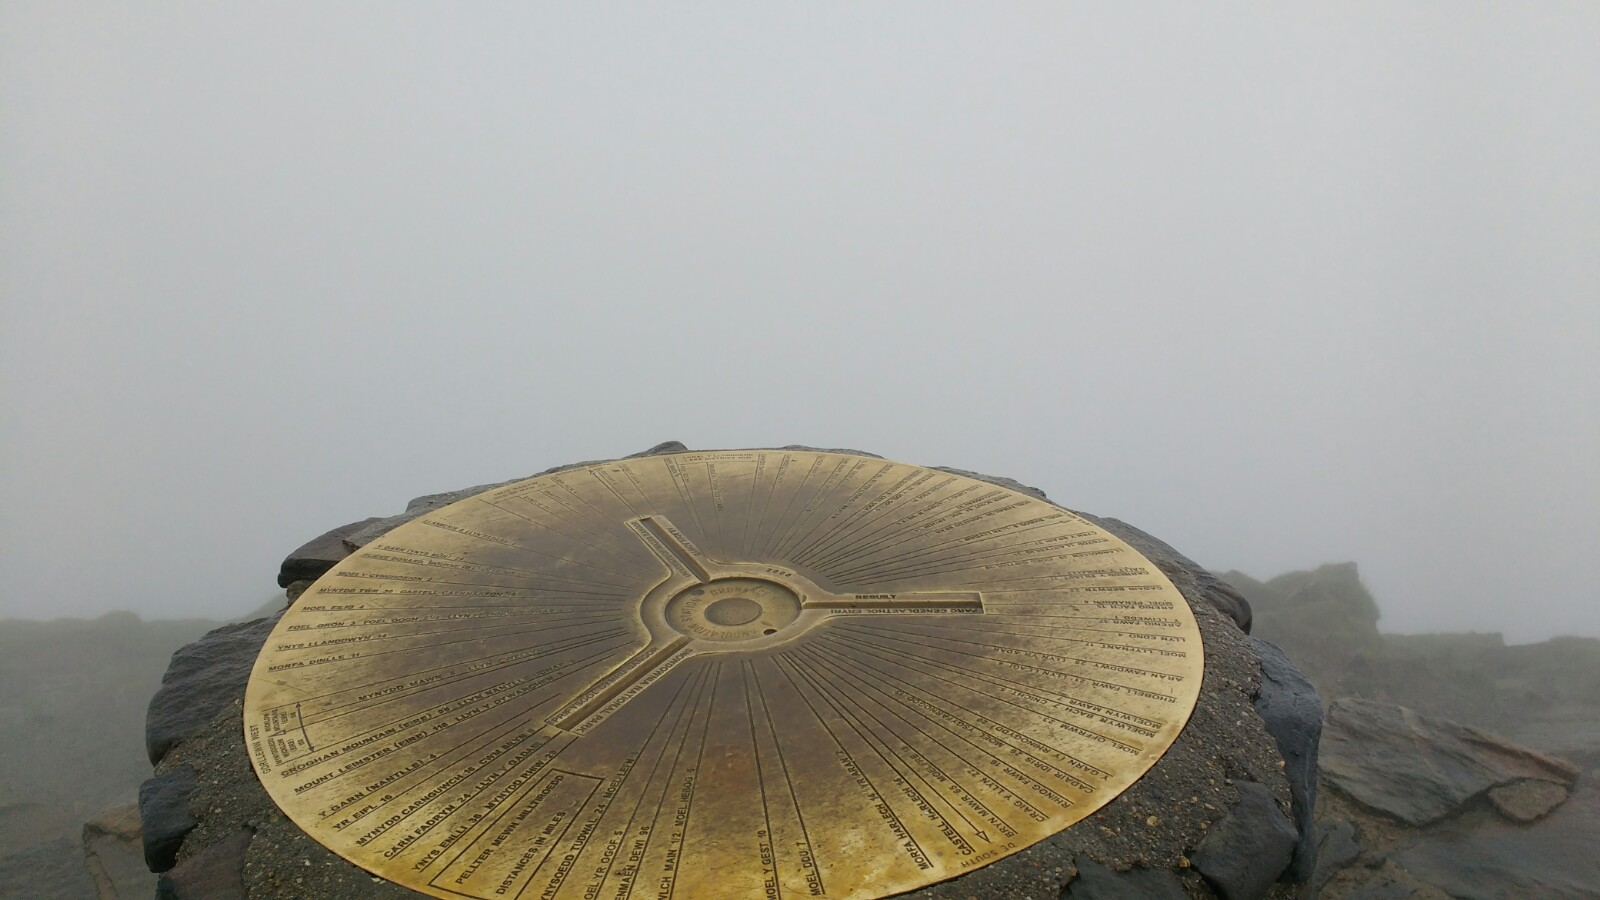 Snowdon summit. What did you expect?